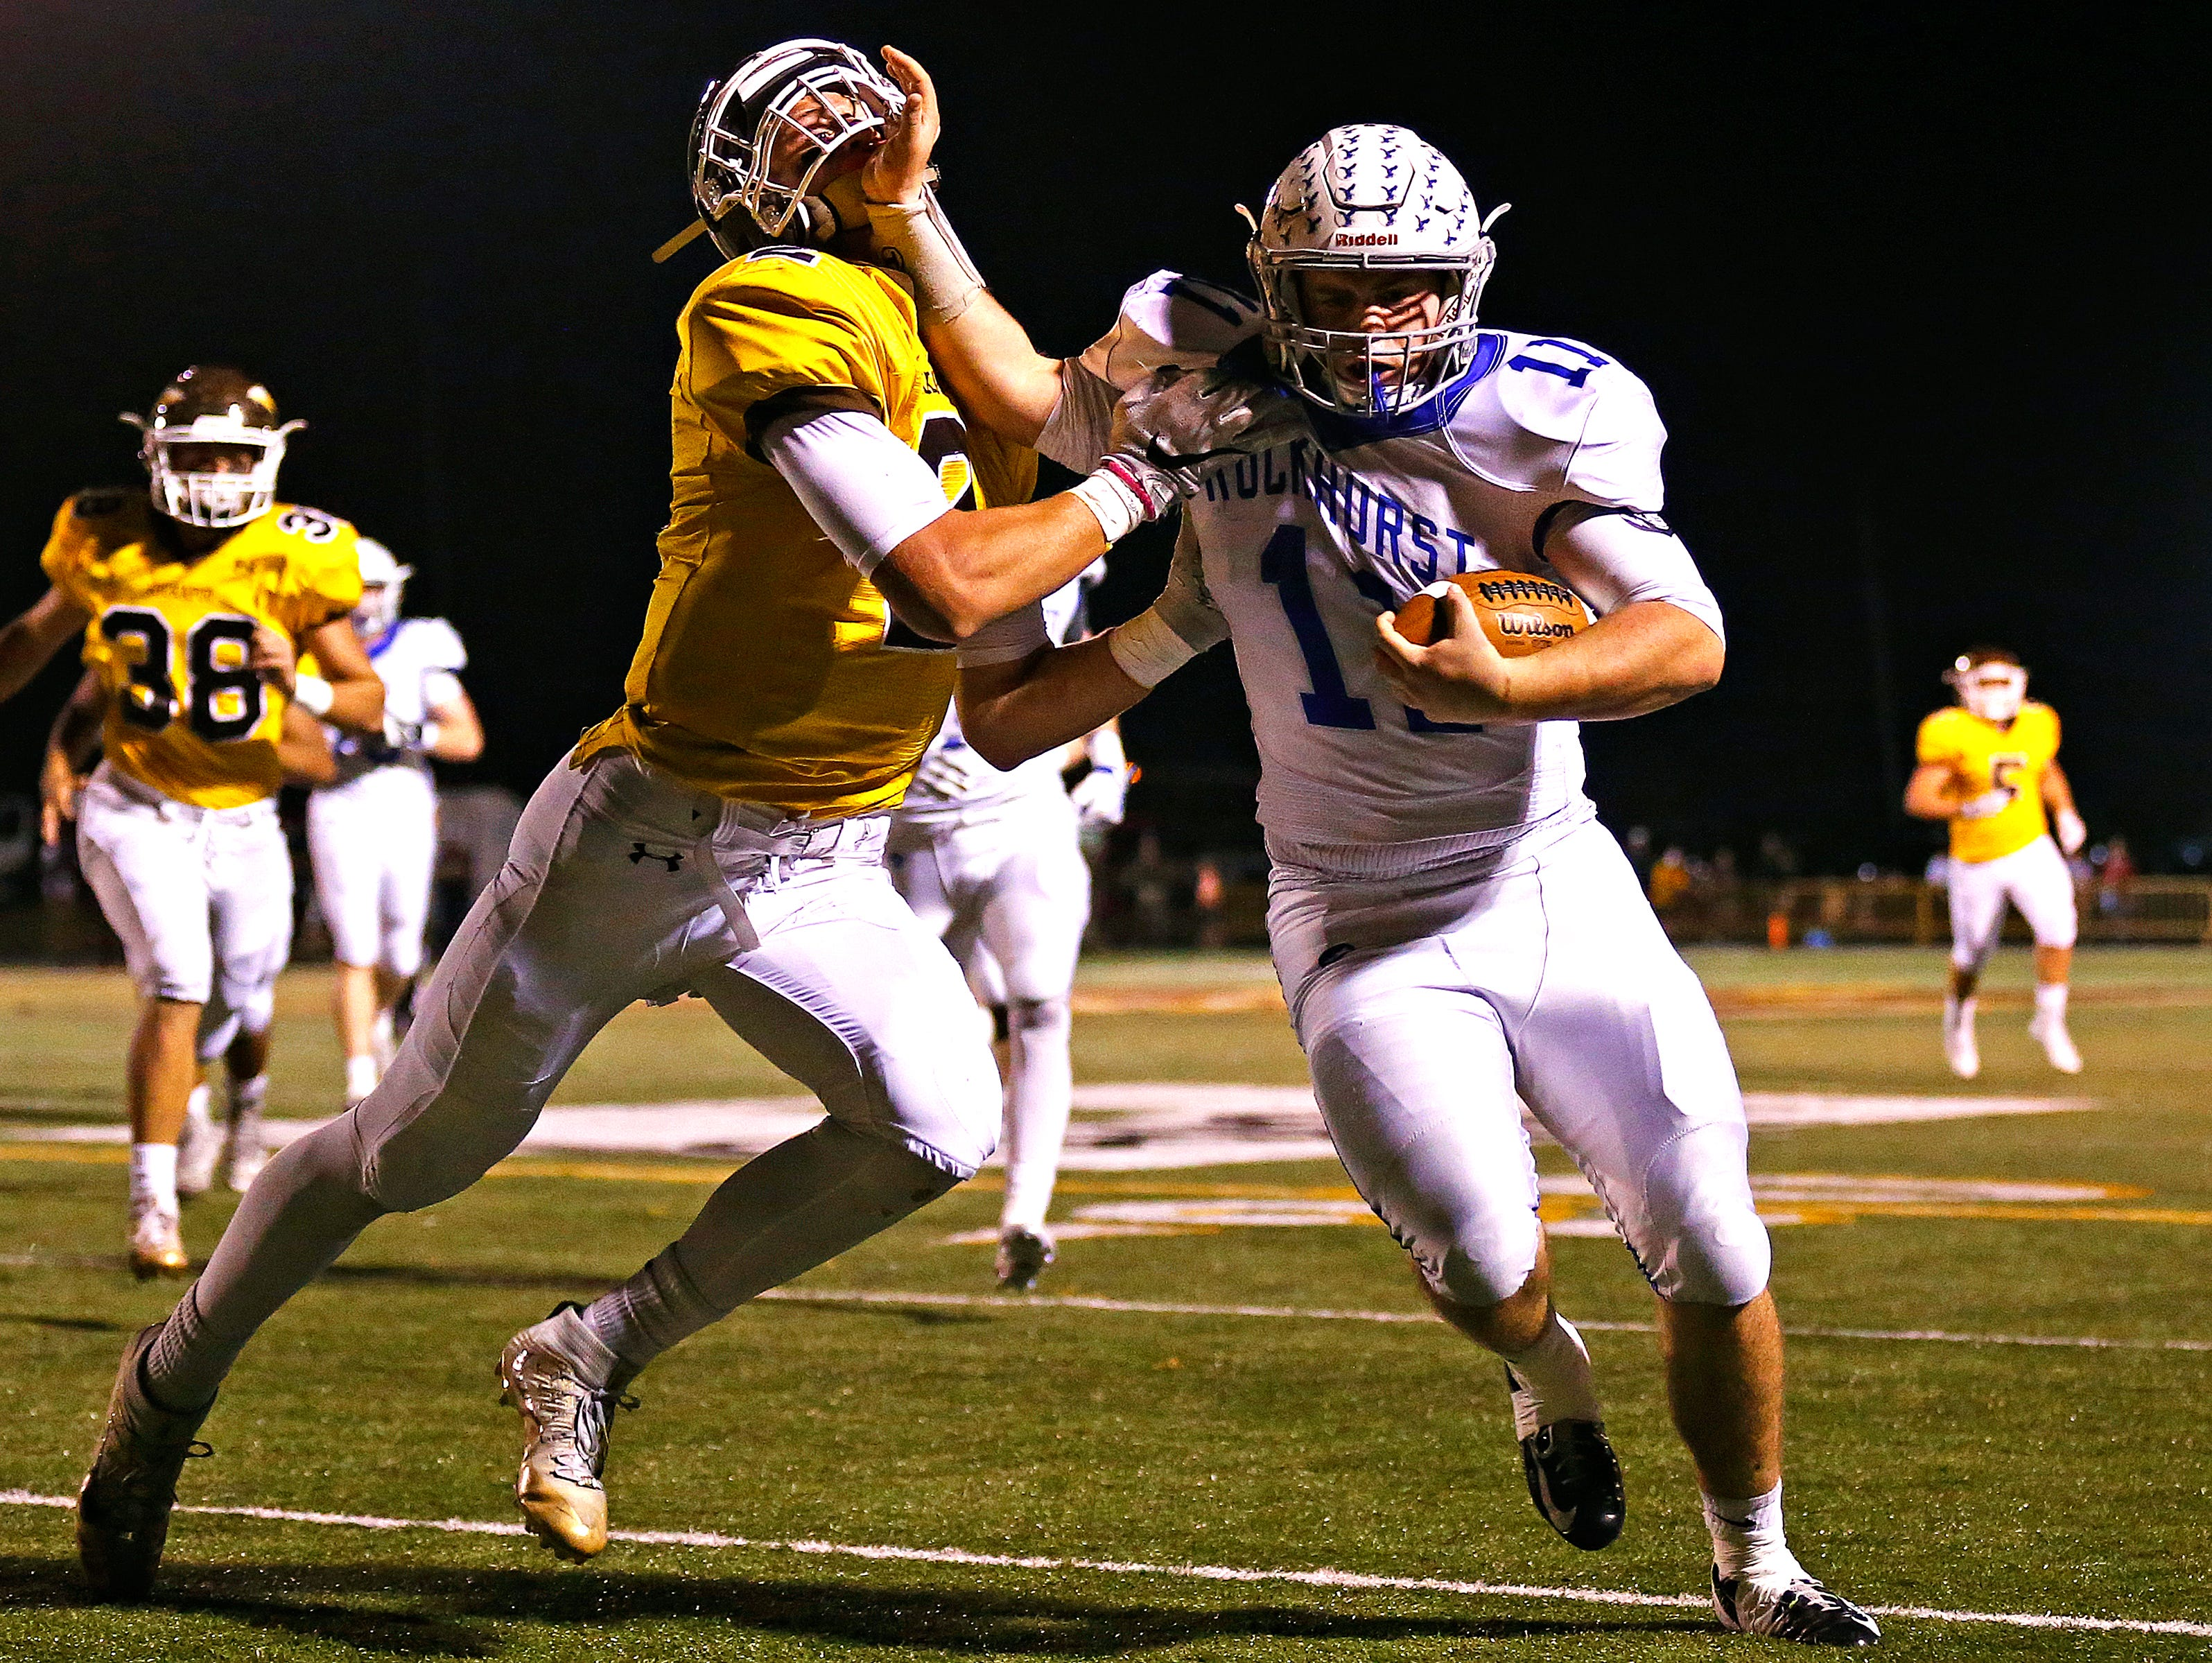 Rockhurst High School quarterback Chance May (11) stiff arms Chiefs linebacker Travis Vokolek (2) during first quarter action of the Class 6 playoff game between Rockhurst High School and Kickapoo High School played at Pottenger Stadium in Springfield, Mo. on Oct. 28, 2016.